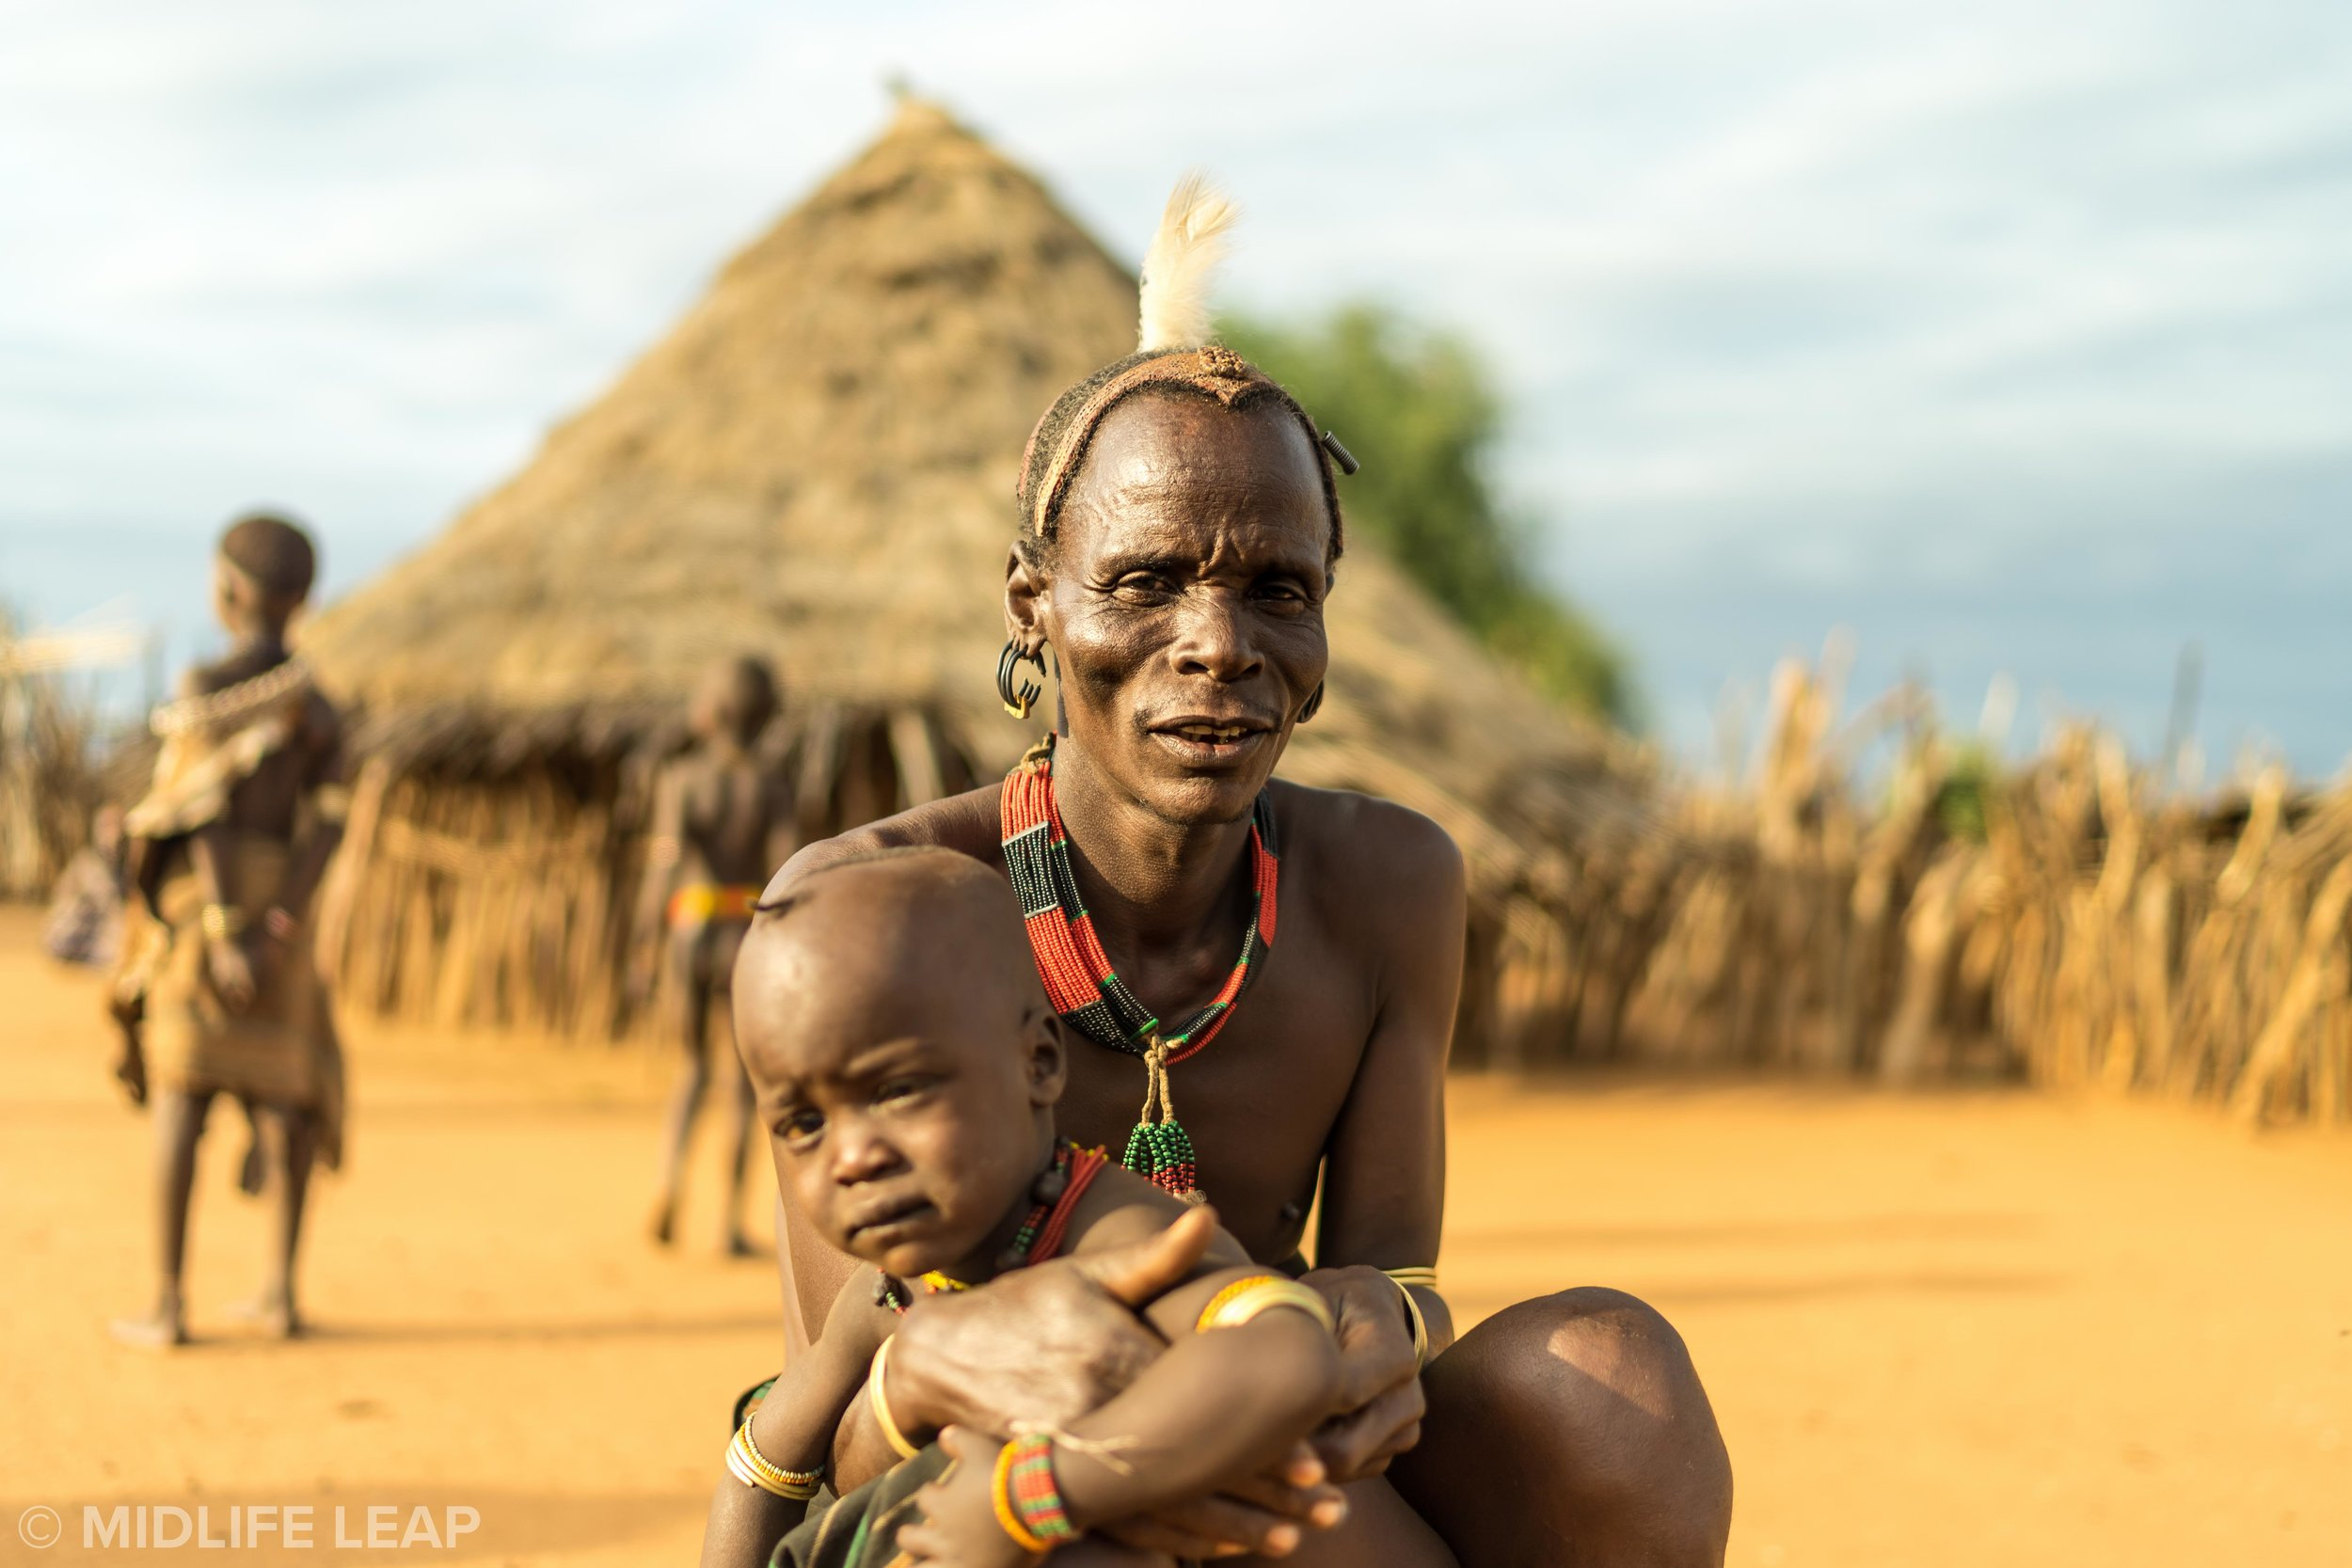 The Chief of the Hamar Tribe